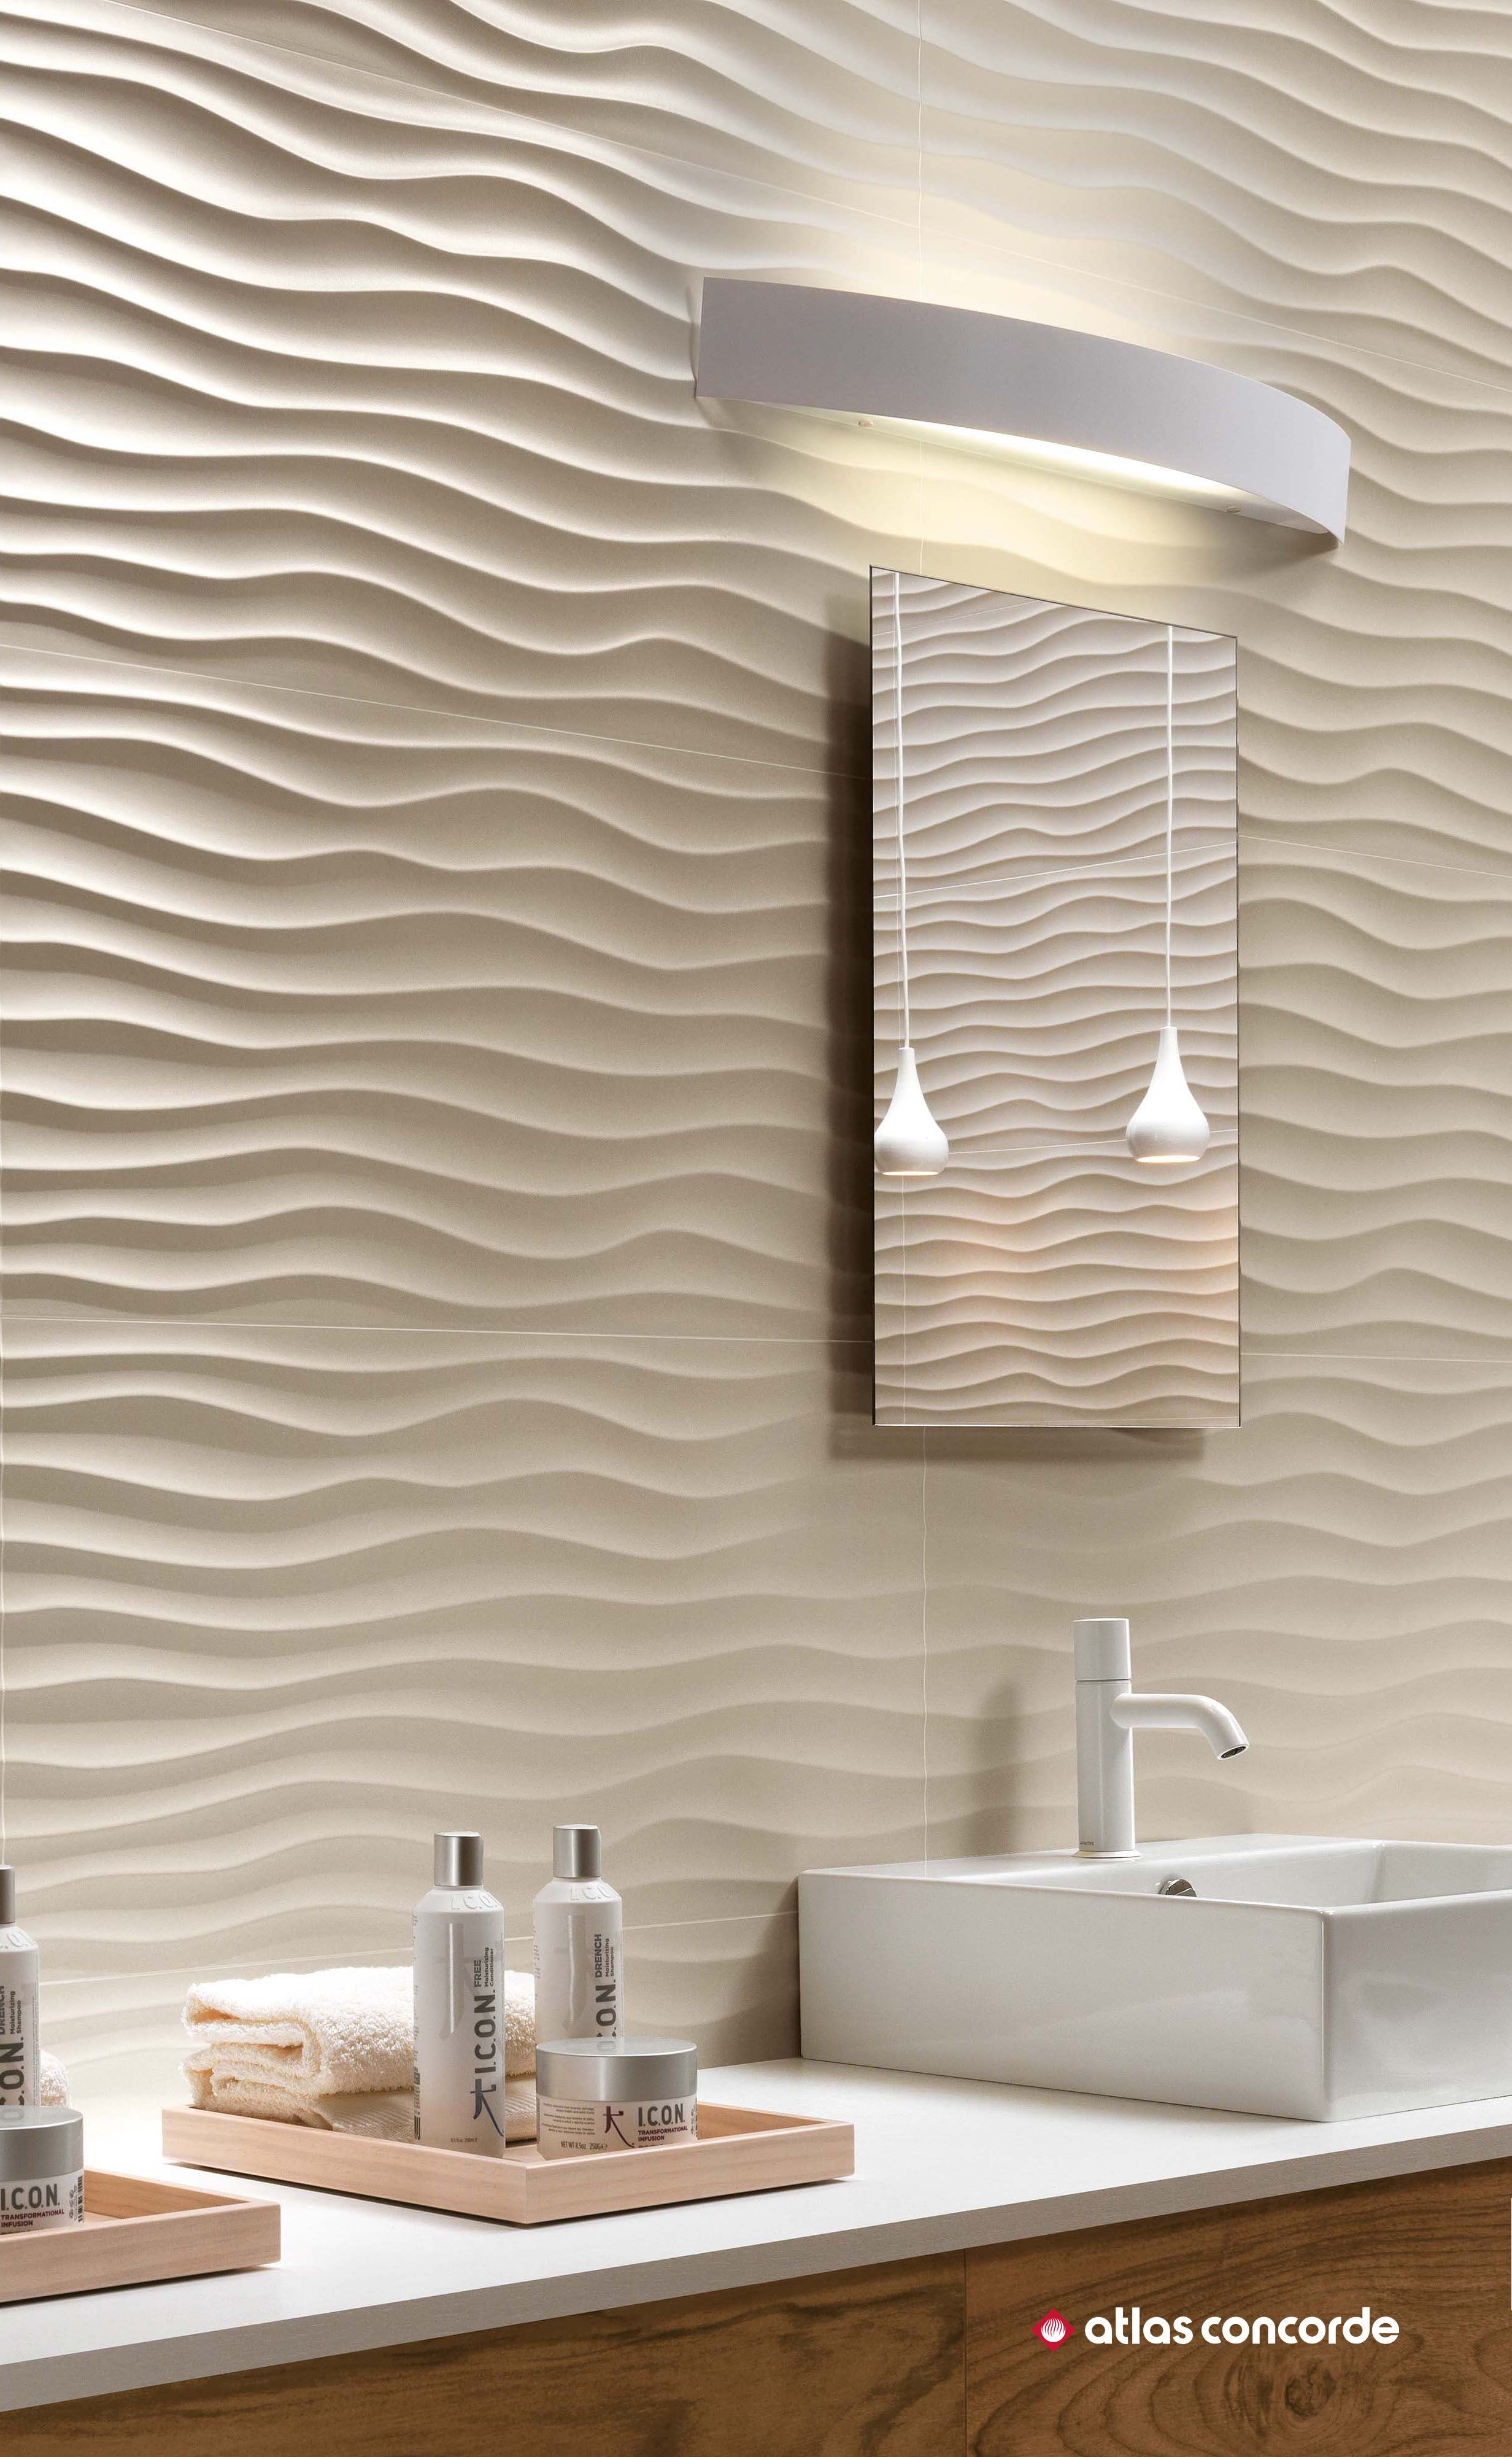 Decorative Wall Tiles for Bathroom New 3d Wall Tiles for Bathrooms Kitchens Spas